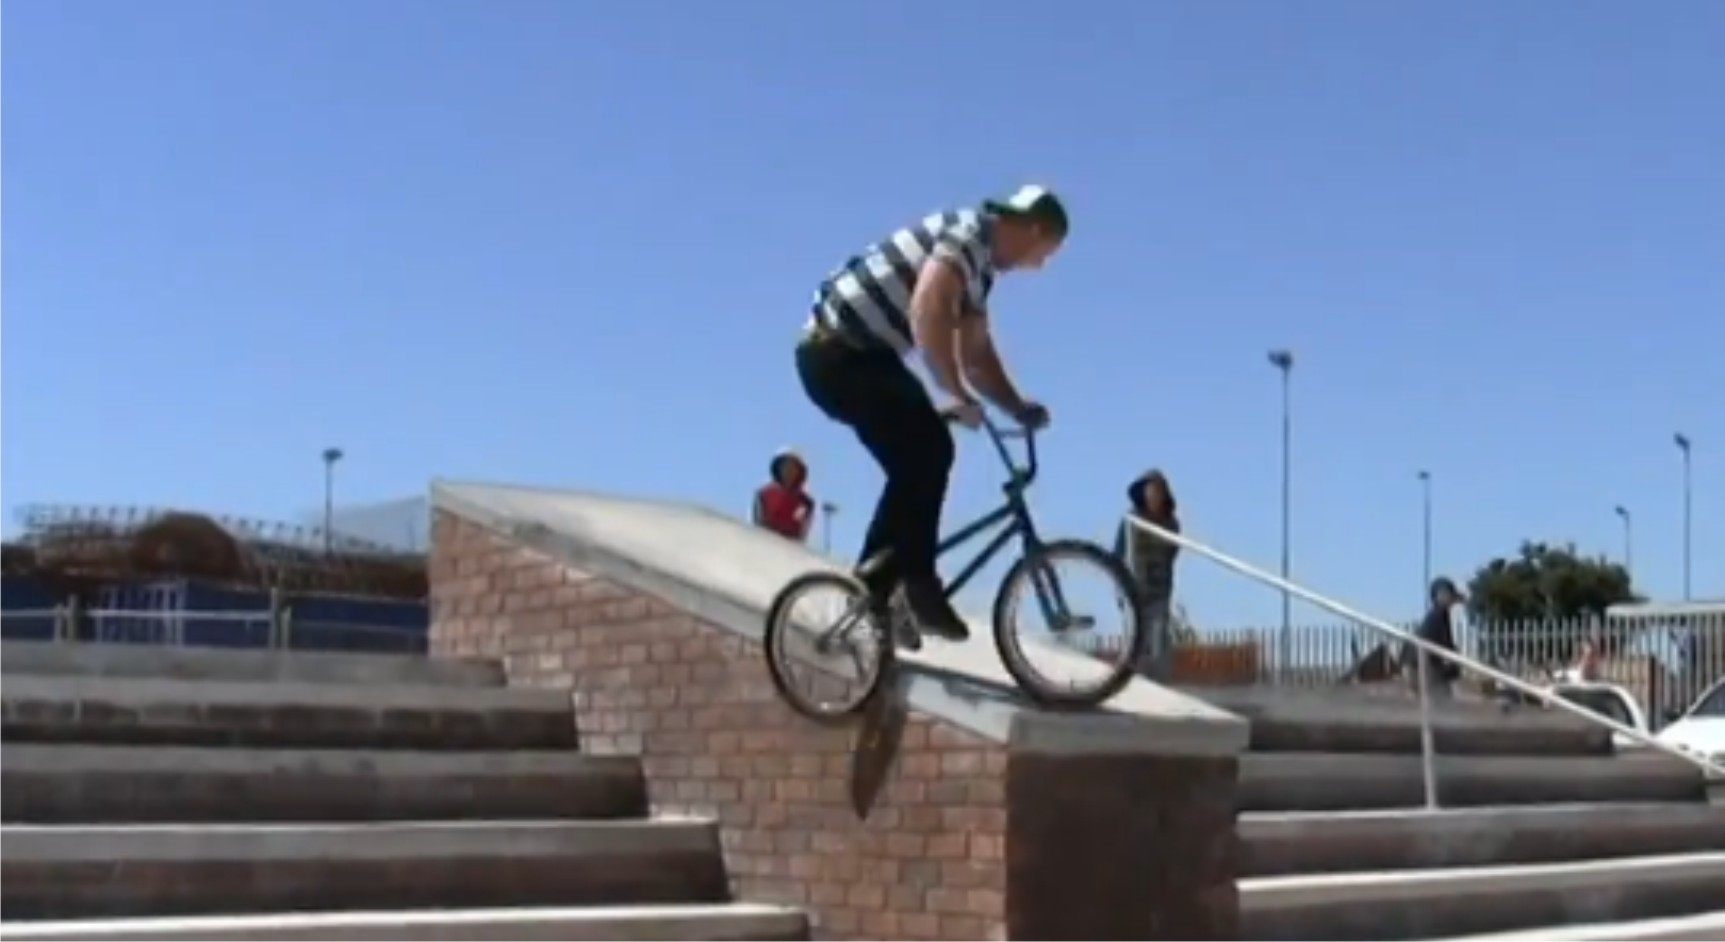 Daylife BMX put together this cool video of some Cape Town riding sessions